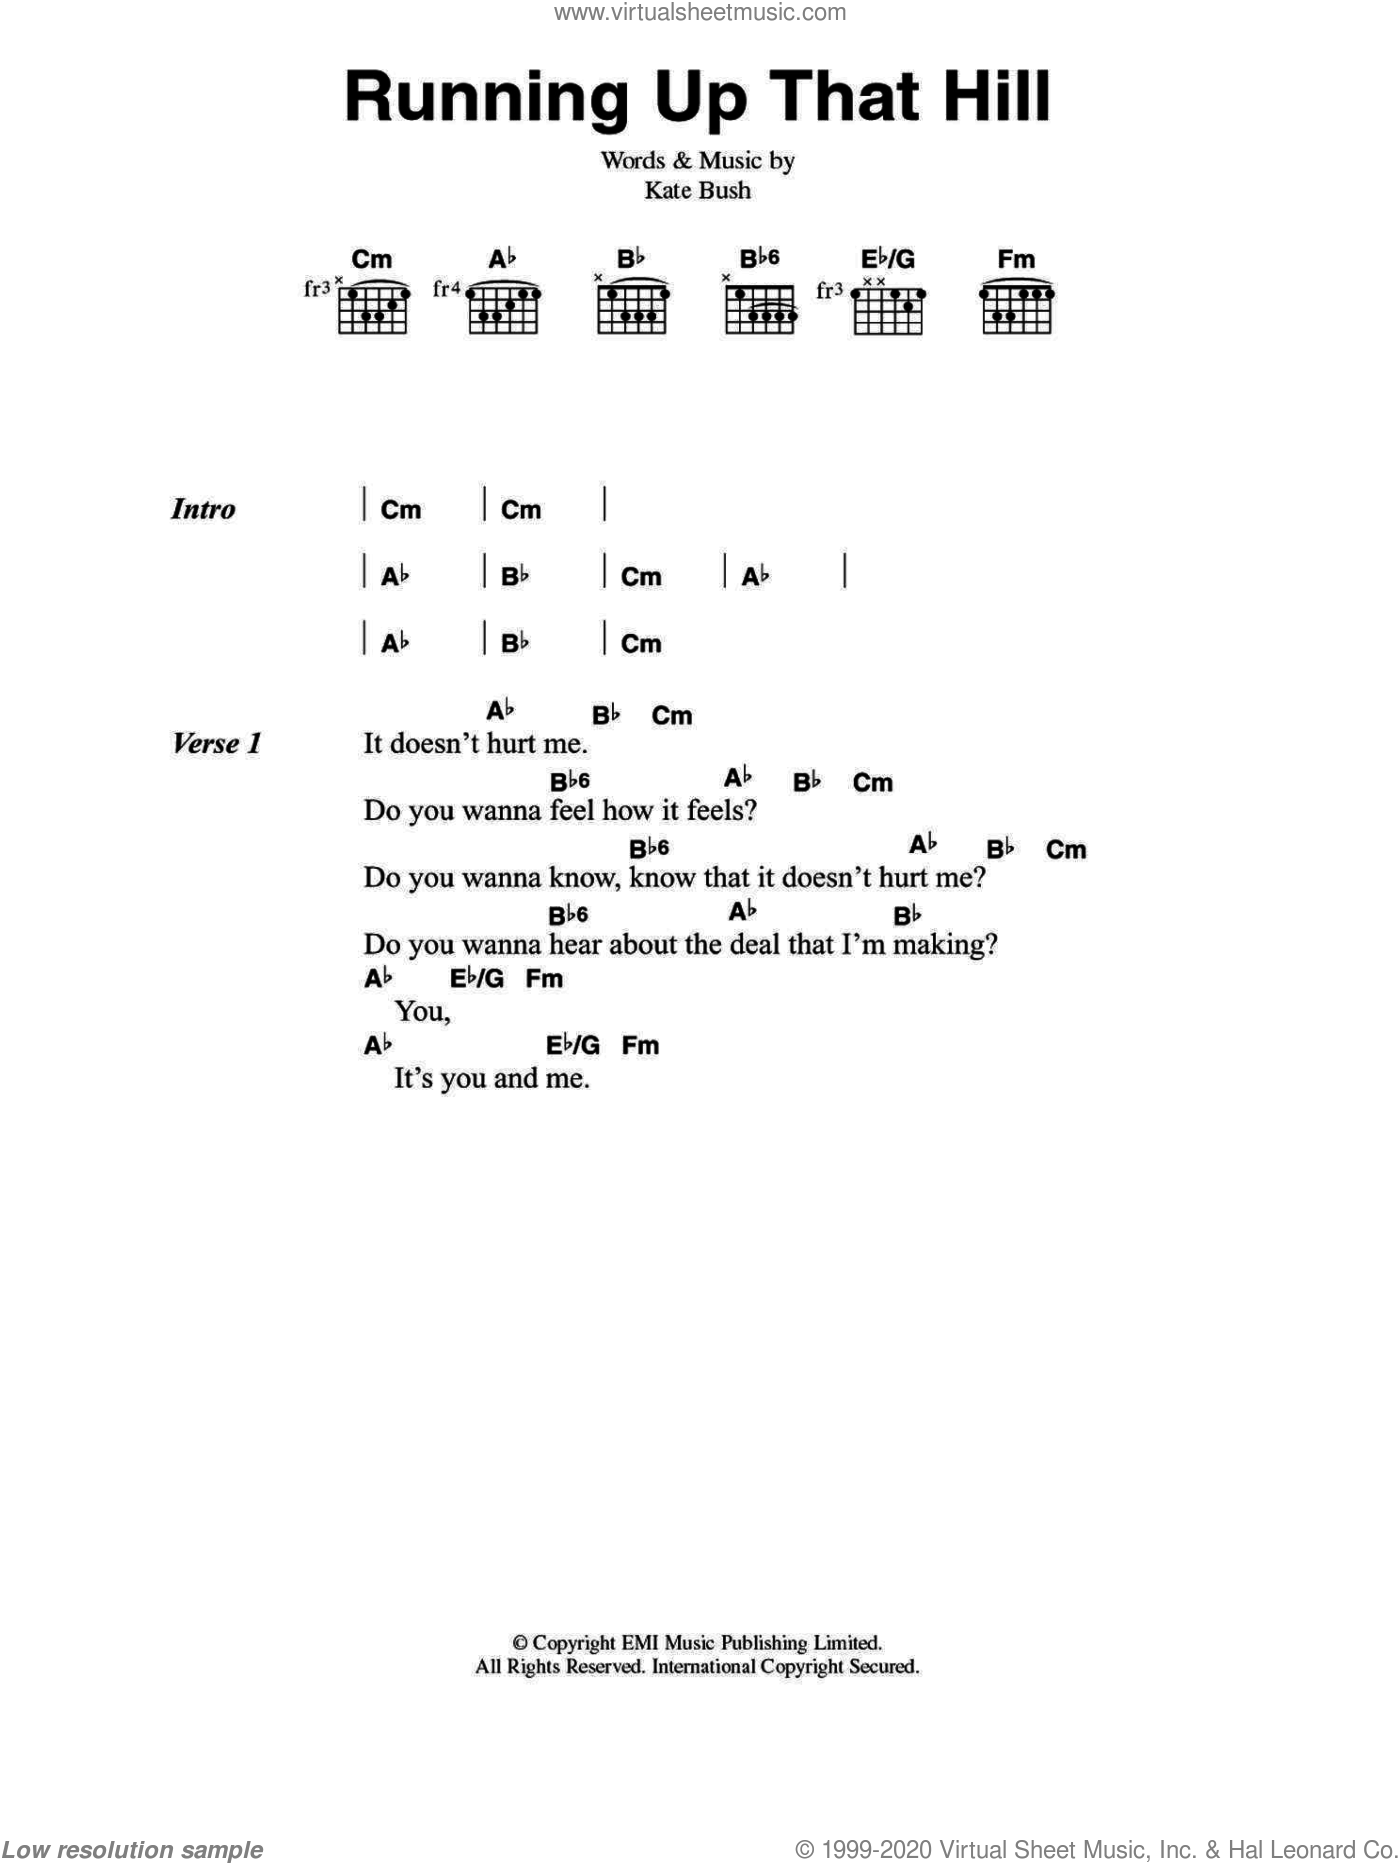 Running Up That Hill sheet music for guitar (chords) by Kate Bush, intermediate skill level